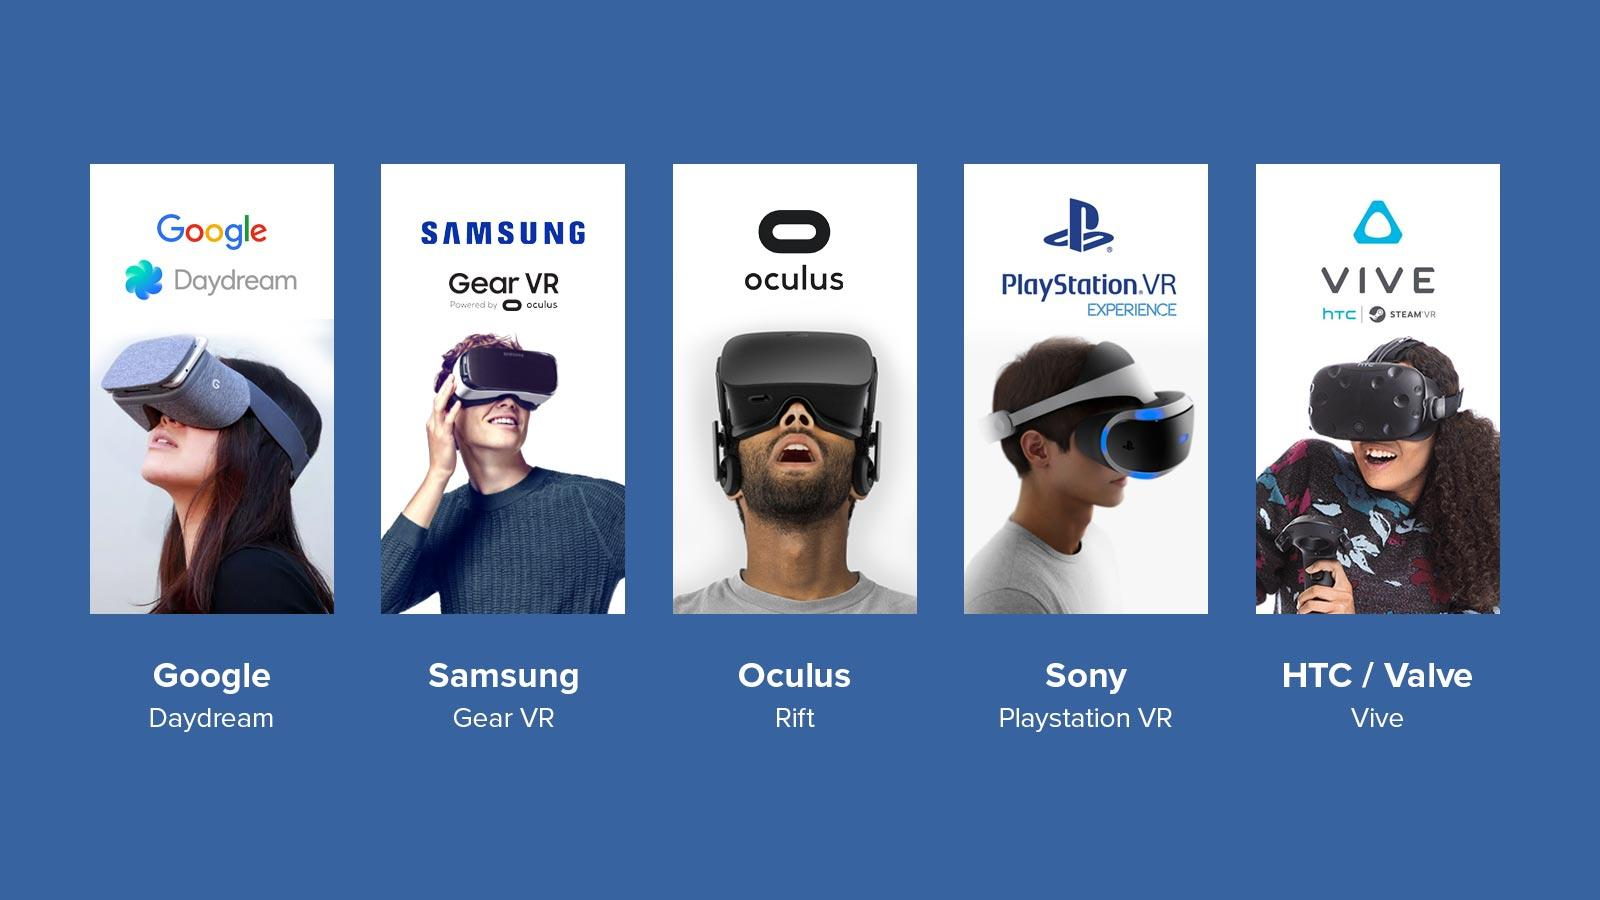 People wearing main VR headset in the market today: Google Daydream, Samsung Gear VR, Oculus Rift, Sony Playstation VR, HTC Vive